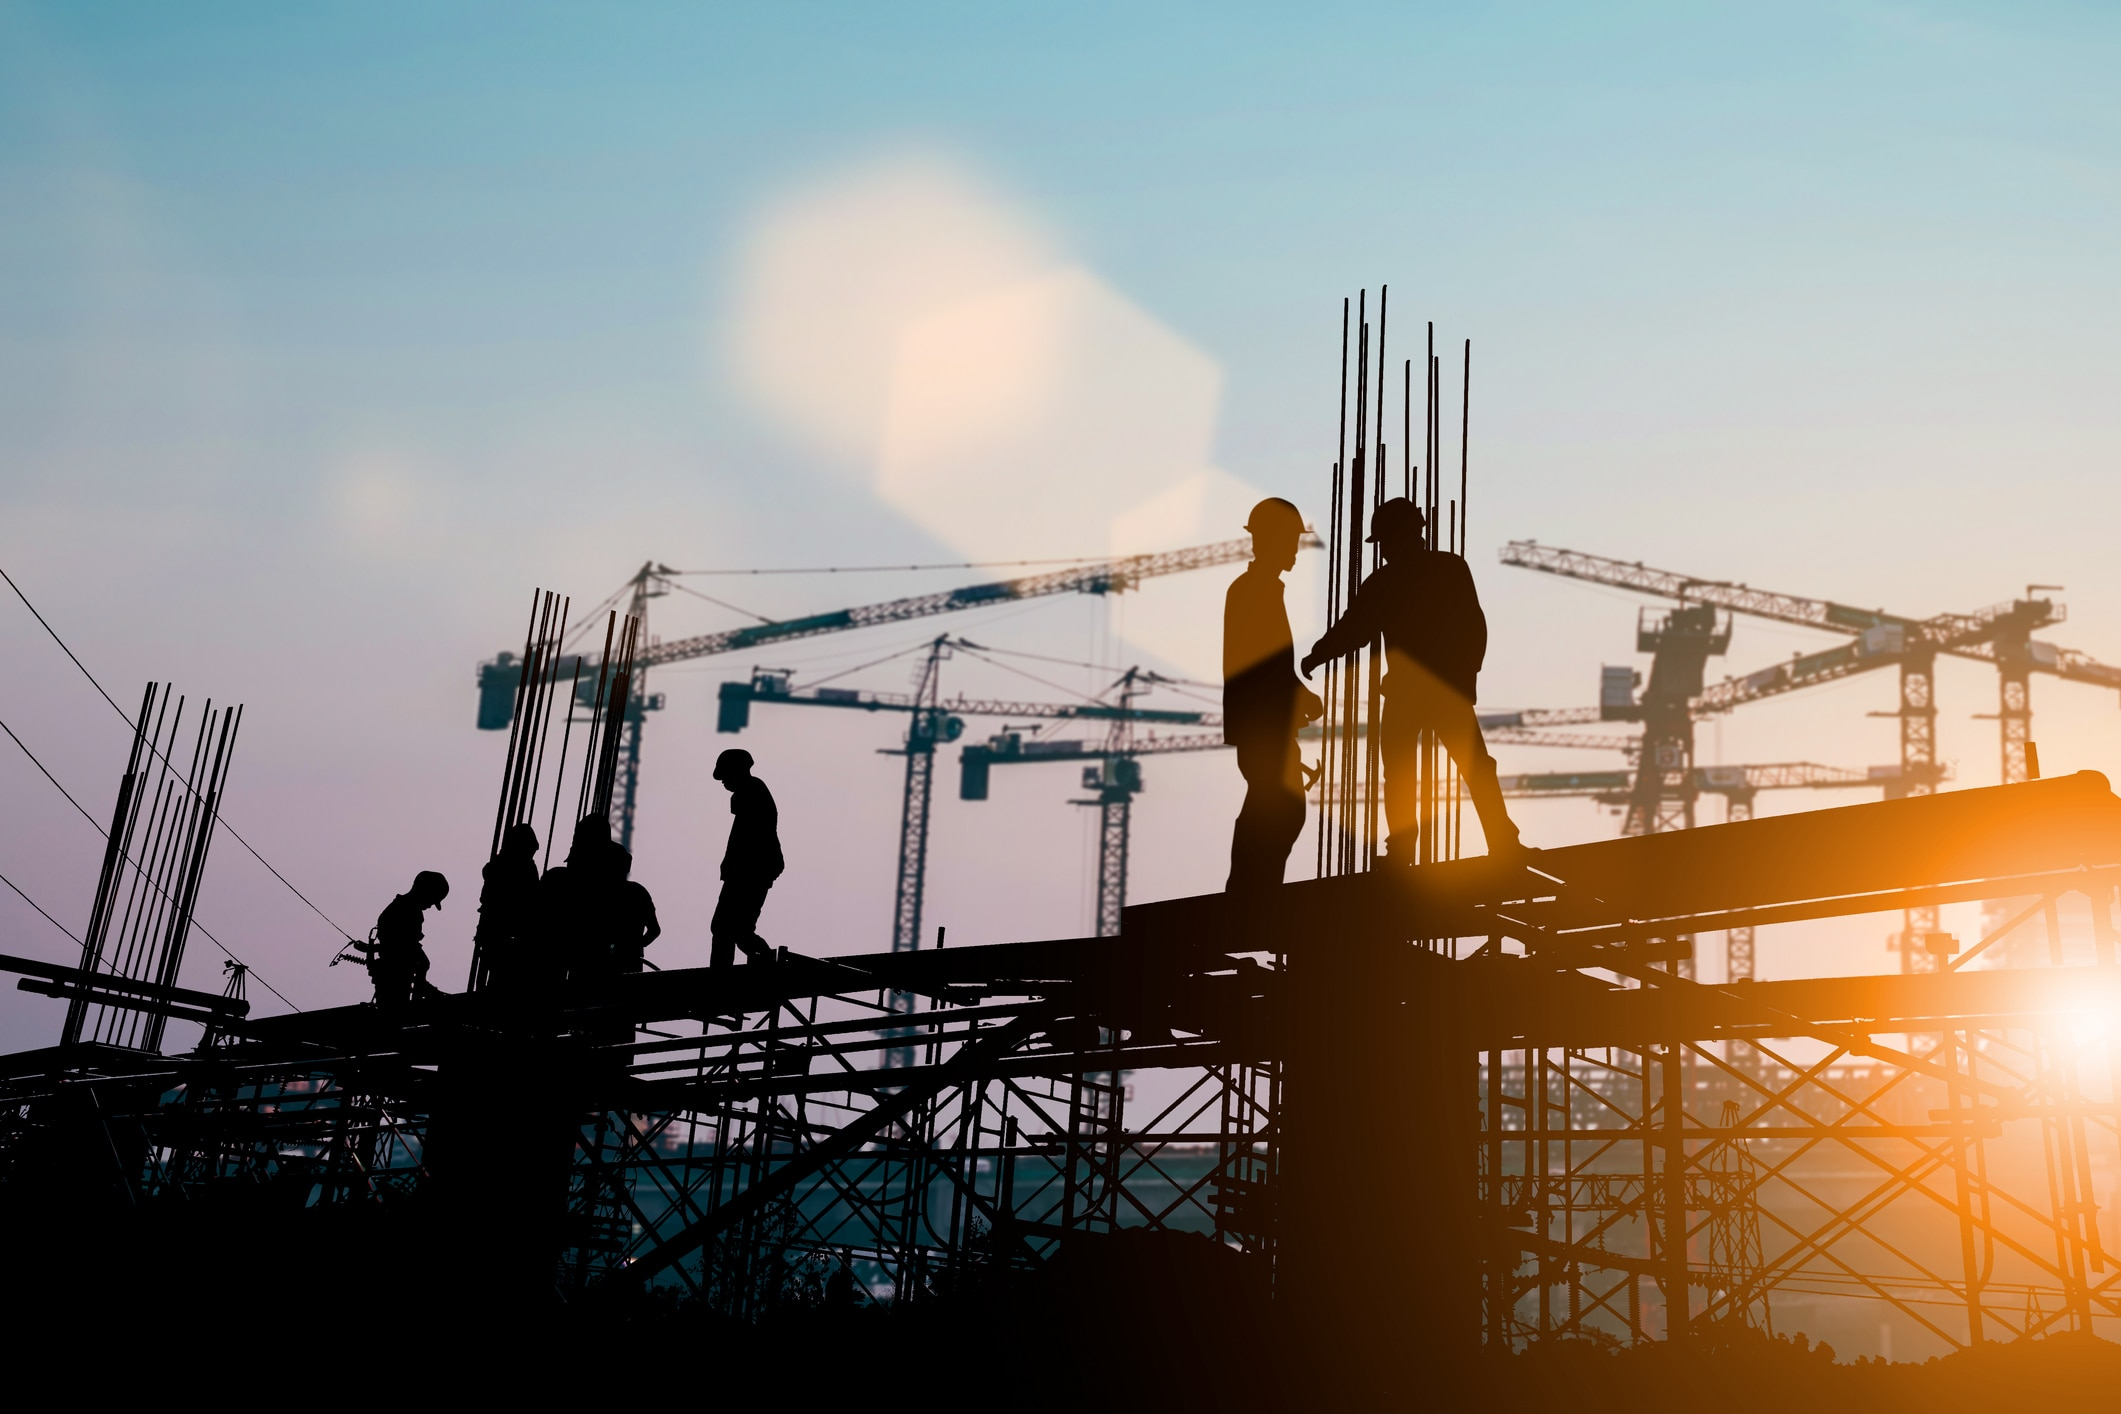 Construction workers building a building at sunset.